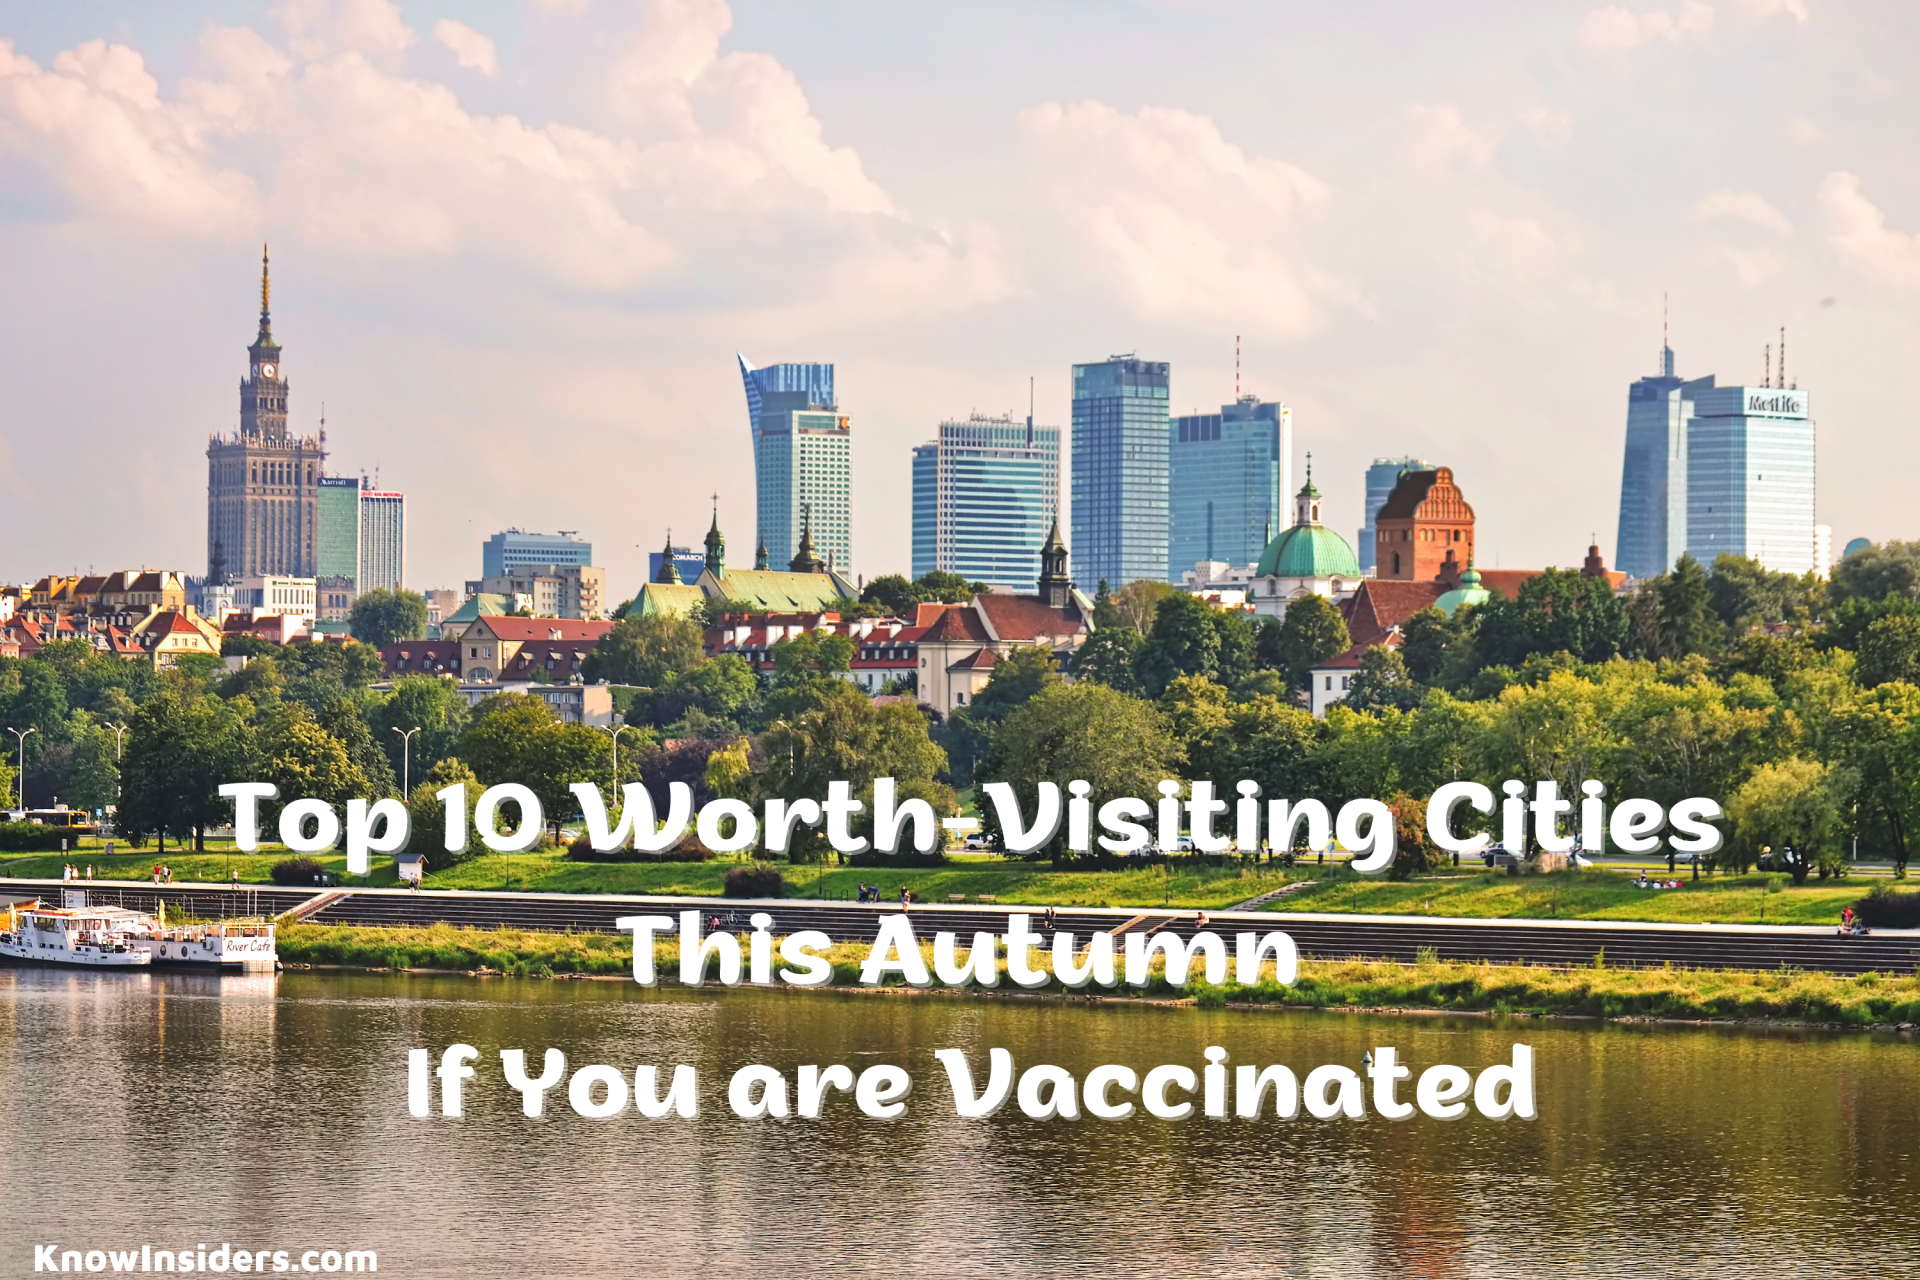 Top 10 Worth-Visiting Cities This Autumn If You are Vaccinated